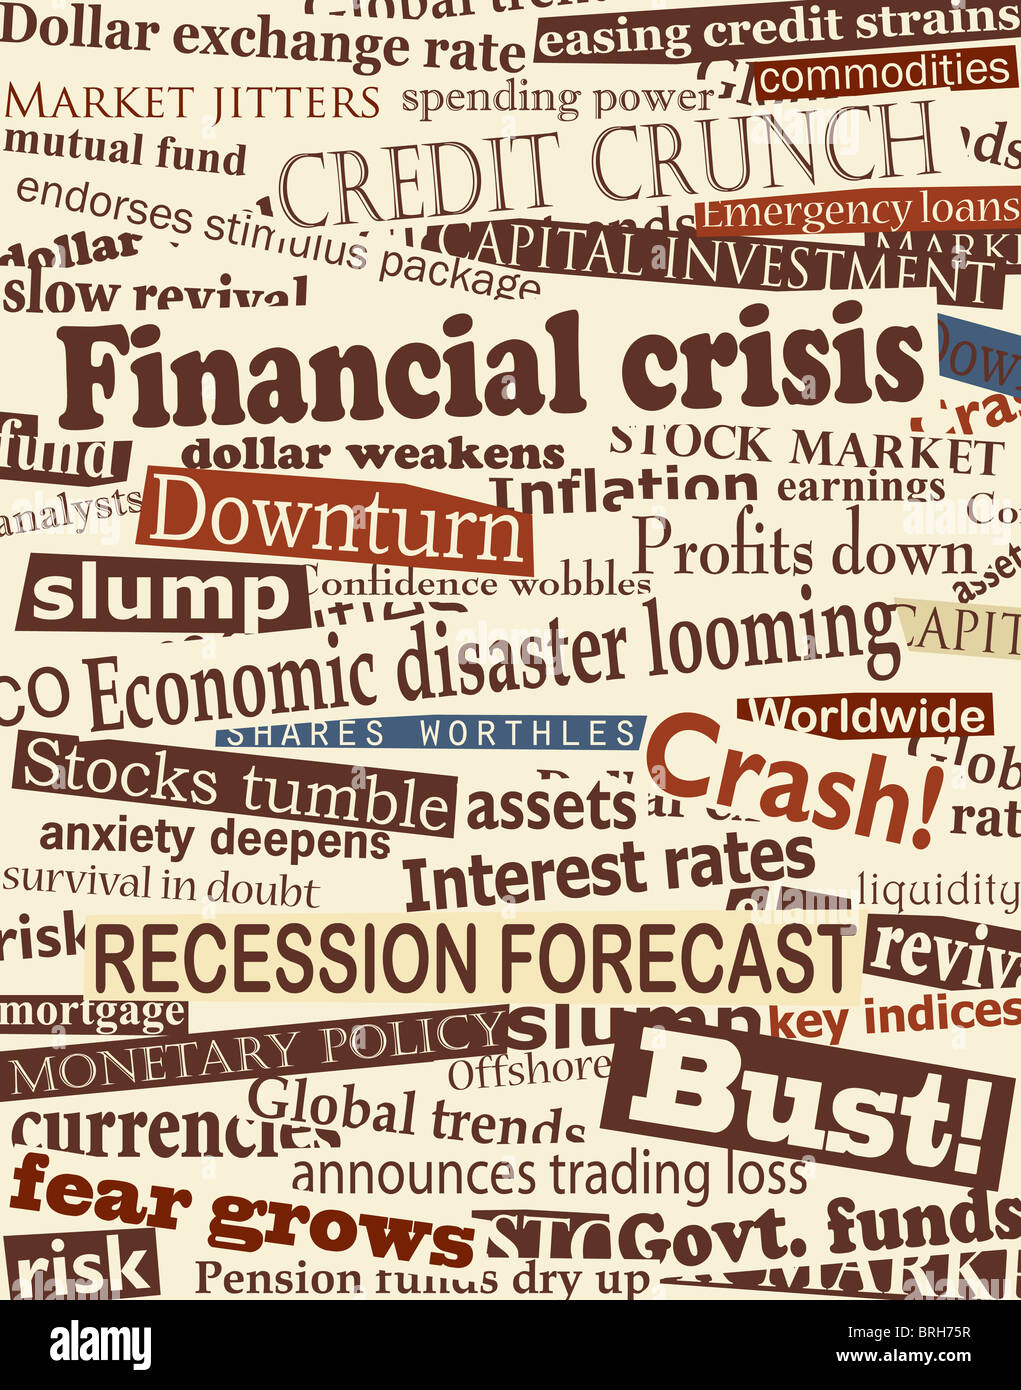 background design of newspaper headlines about economic